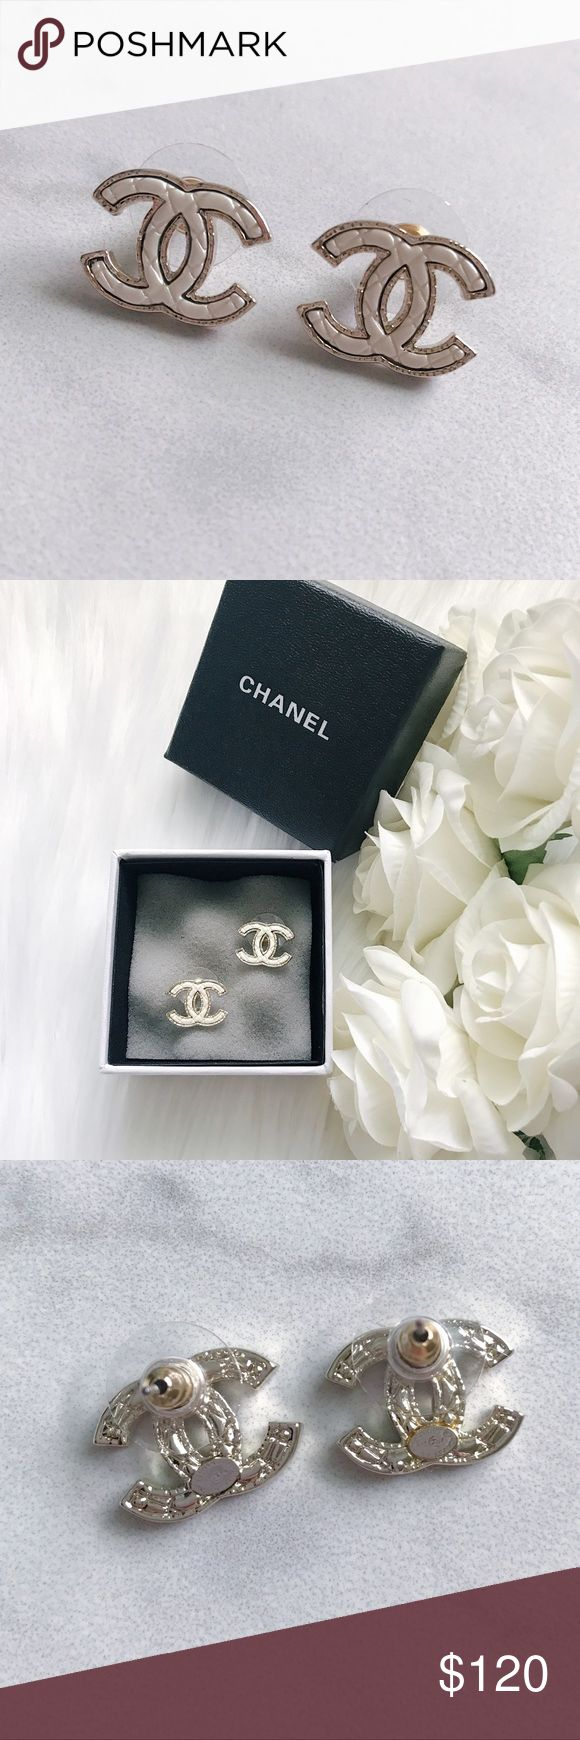 New White Quilted Chanel Logo Earrings ❗️Please read the description❗️These earrings feature white color, stamp on back, amazing quality. Come with box. ❗️Not auth, mirror image quality❗️Approximate length-1,2 cm, width-1,8 cm. CHANEL Jewelry Earrings